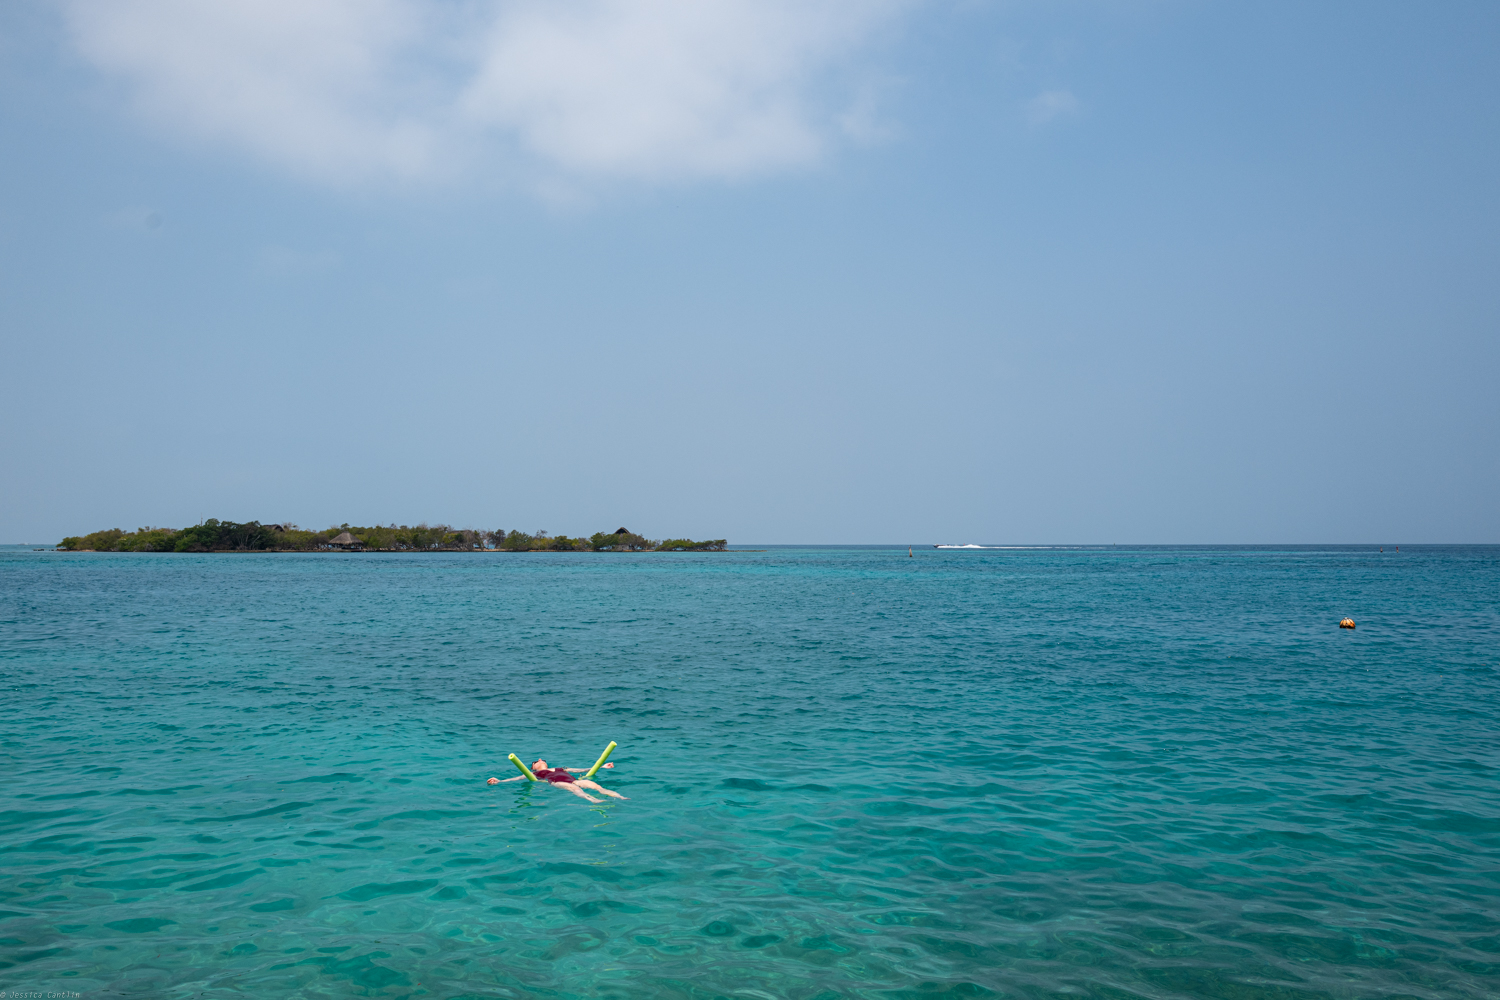 Floating in the majestic Caribbean Sea